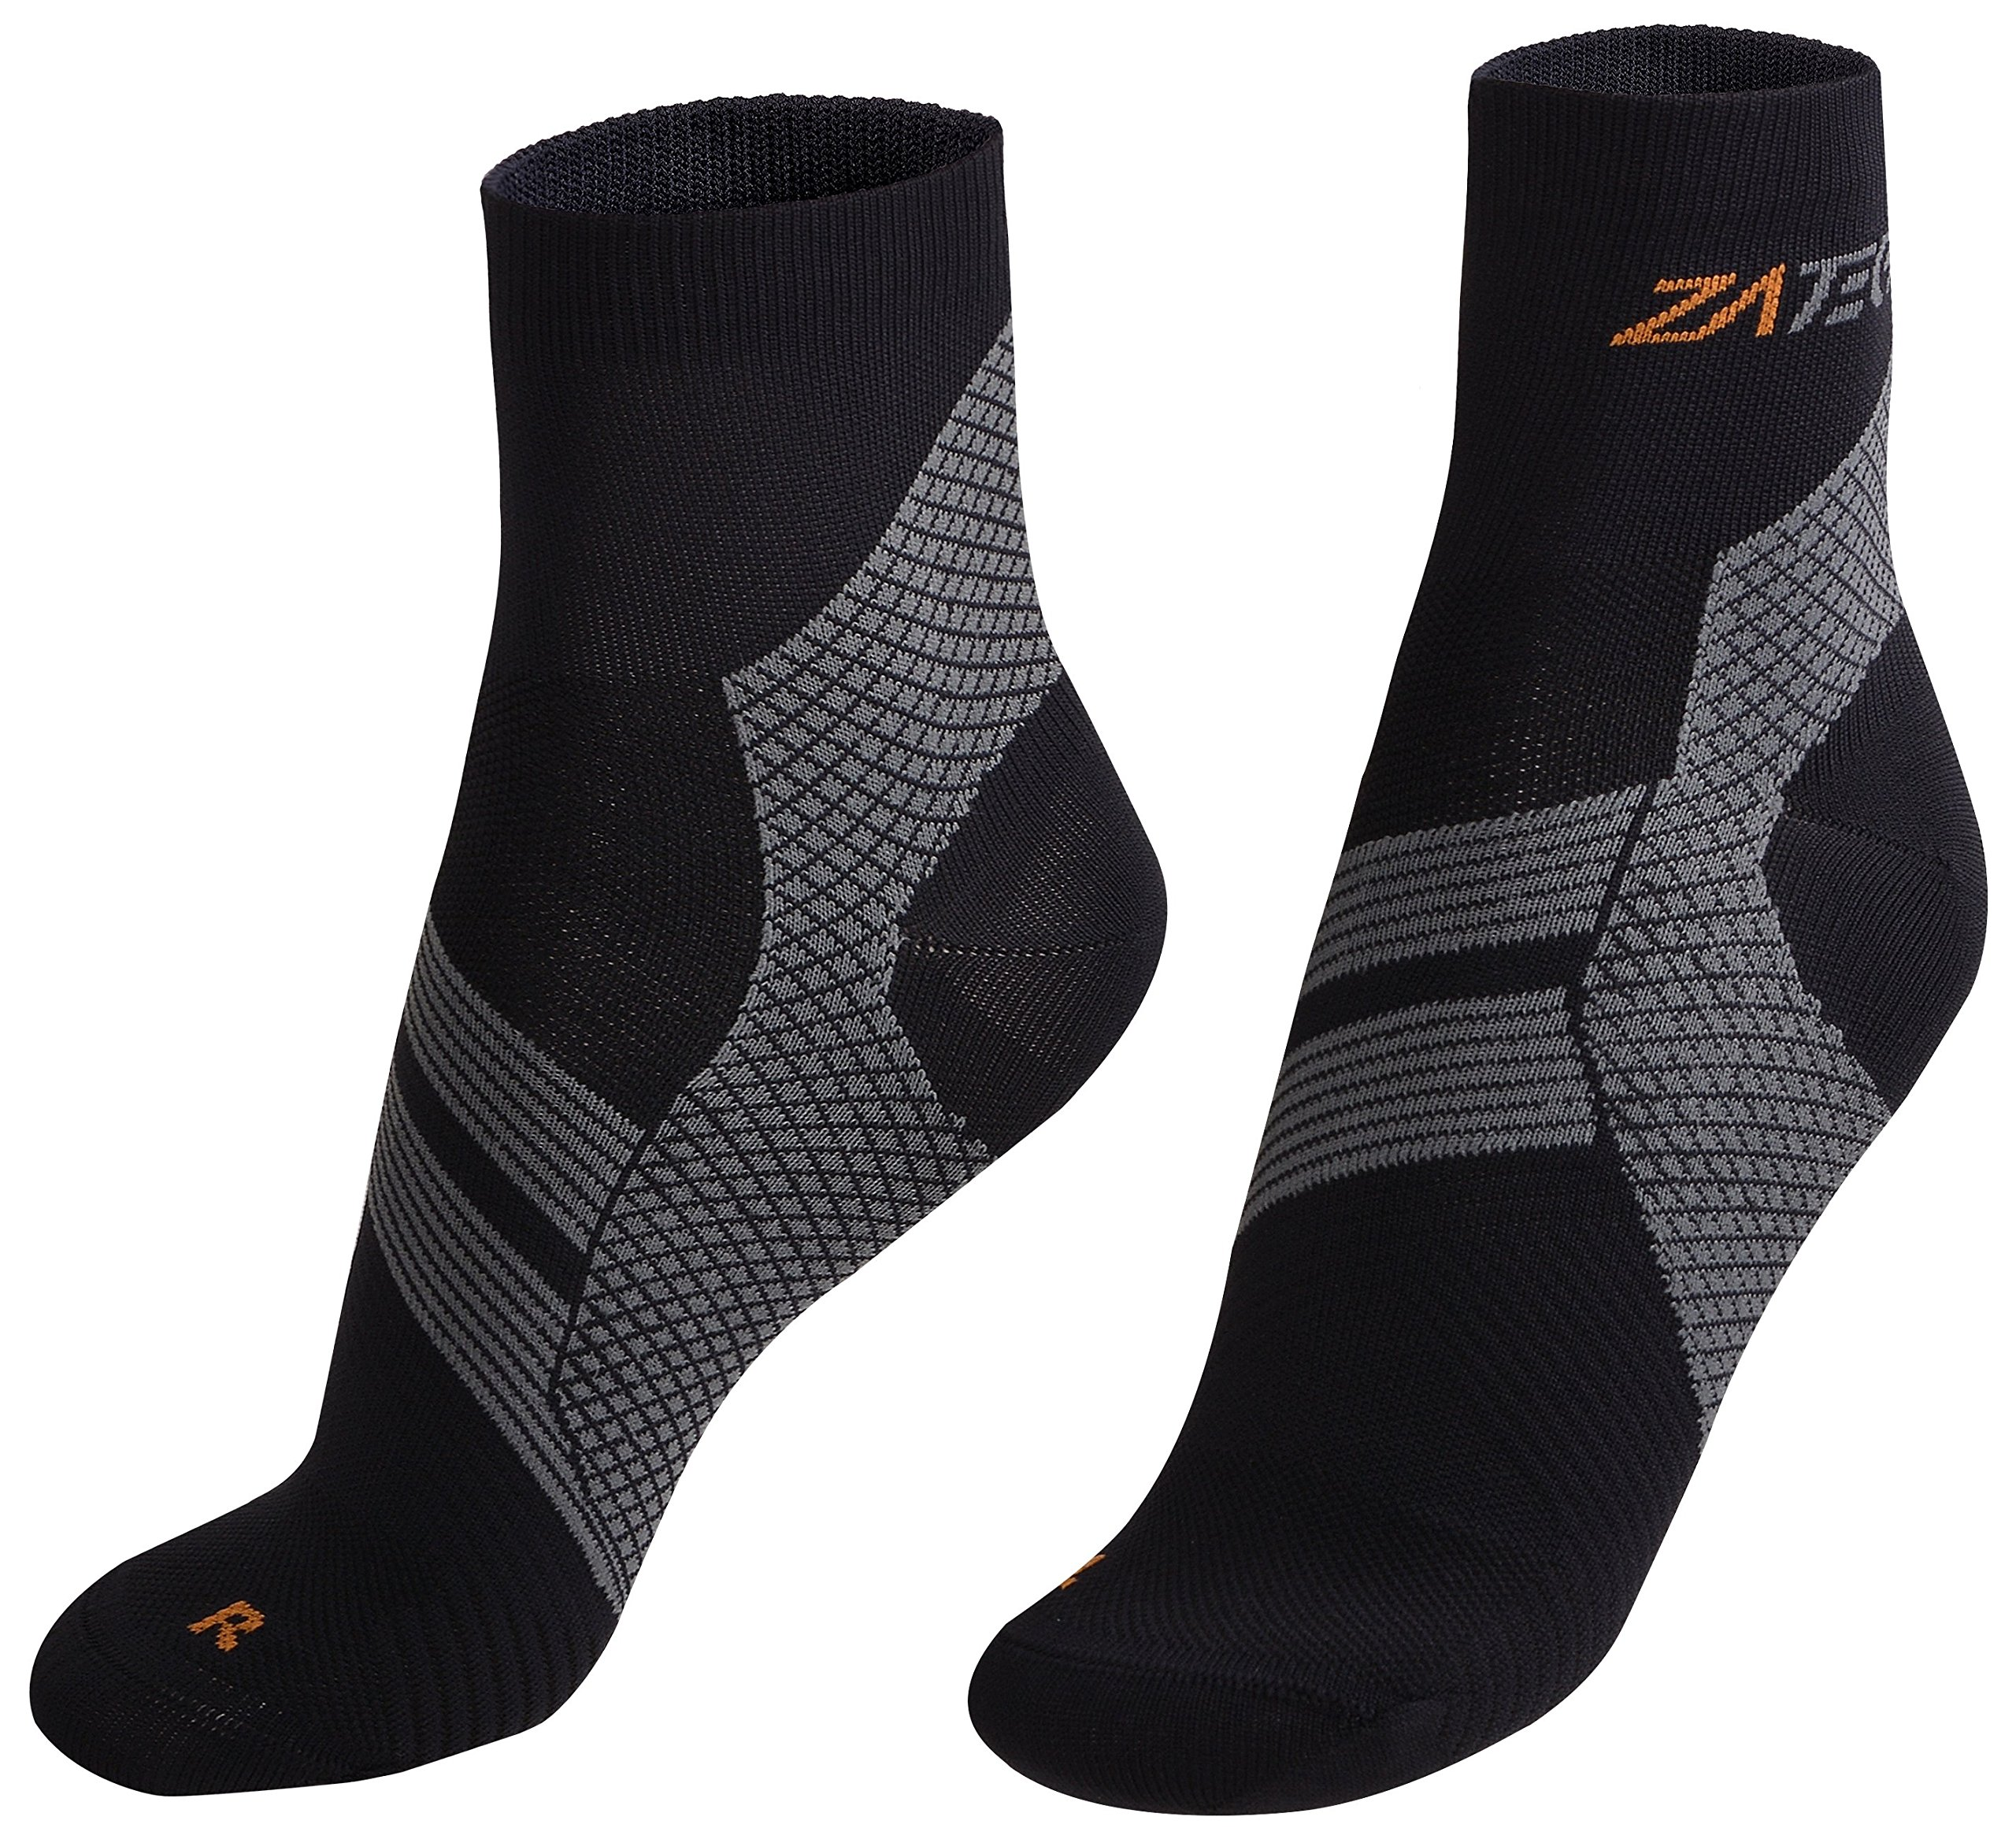 ZaTech Plantar Fasciitis Sock, Compression Socks for Men & Women. Heel, Ankle & Arch Support. Increase Blood Circulation, Reduce Swelling, Foot Pain Relief. (Black/Gray, Large)